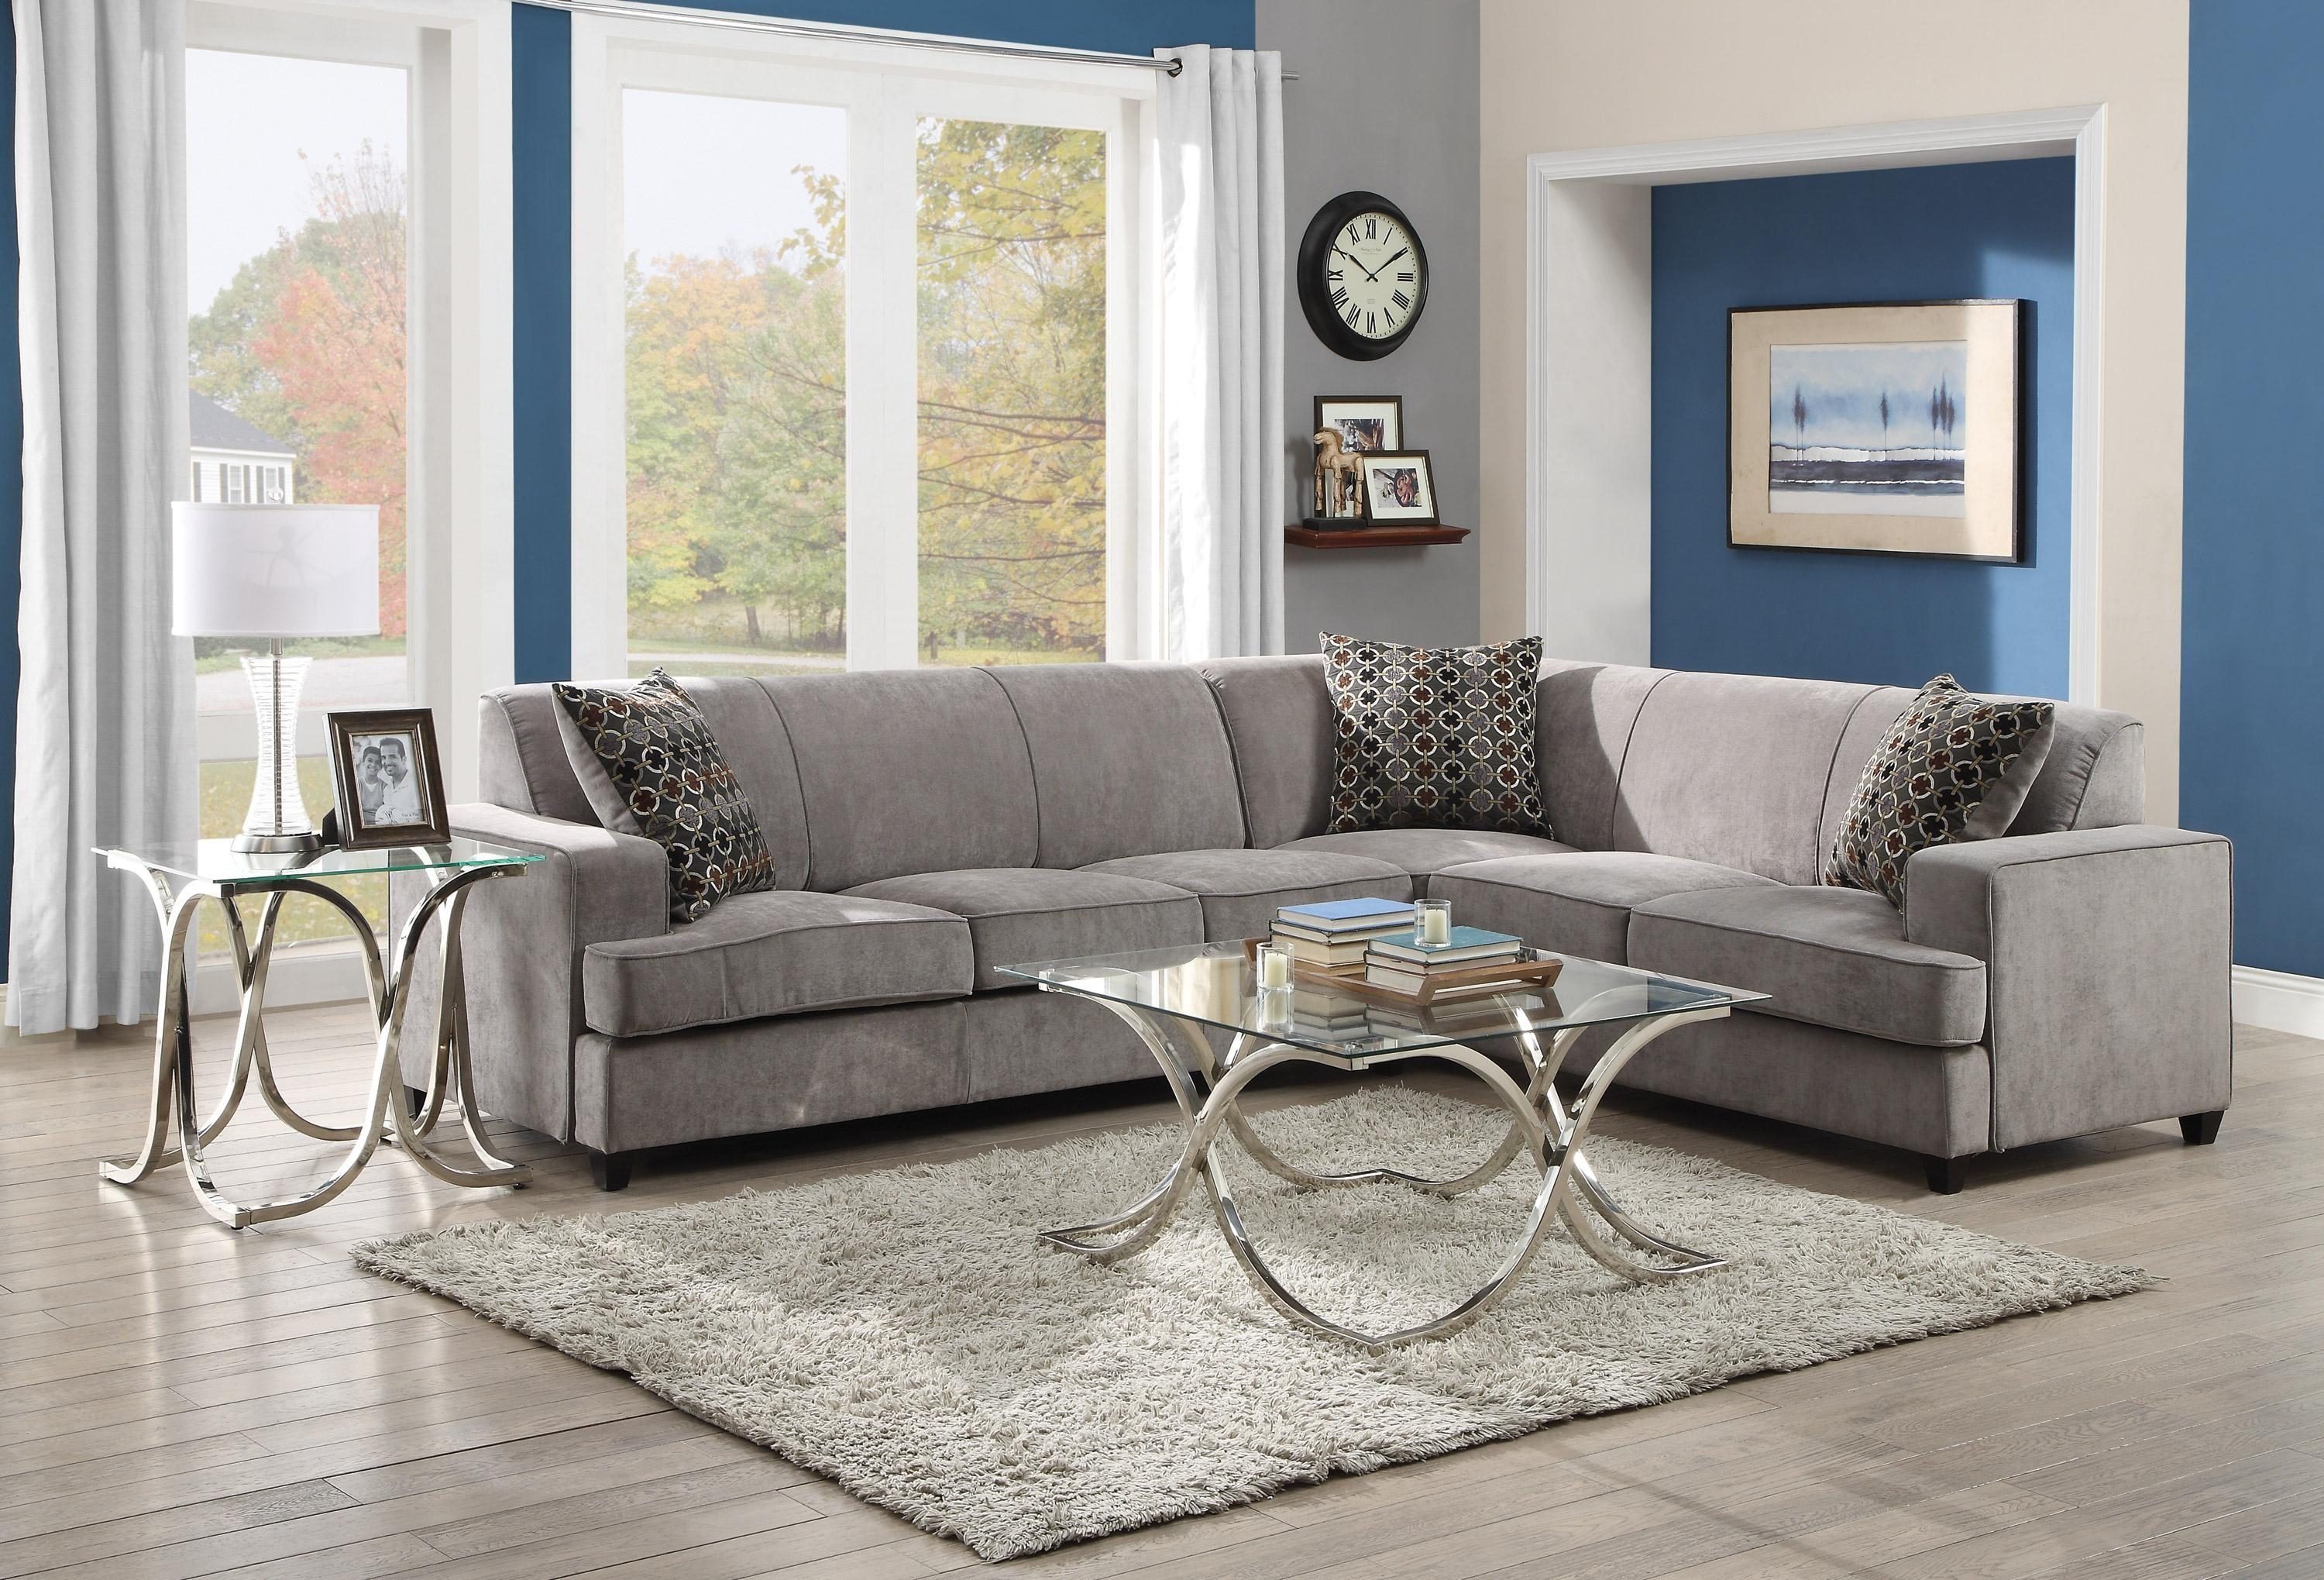 Furniture: Deep Sectional Sofa | Pottery Barn Sofa | Velvet With Room And Board Sectional Sofa (Image 4 of 20)